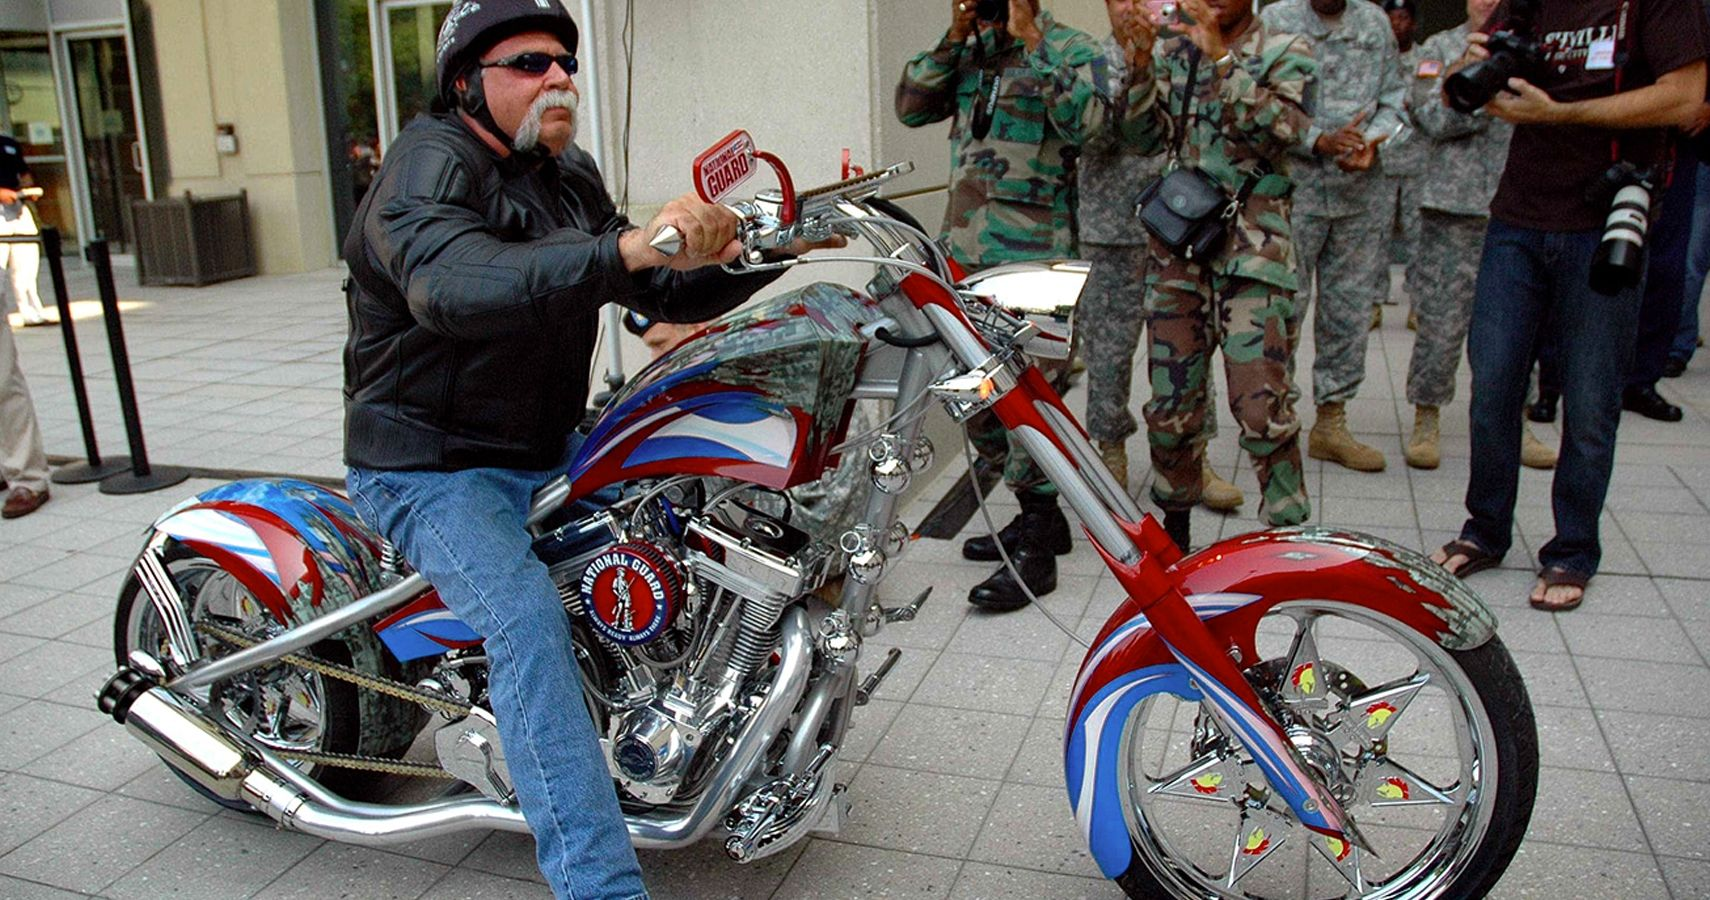 American Choppers' Paul Teutel Sr. To Make Motorcycles For Retail